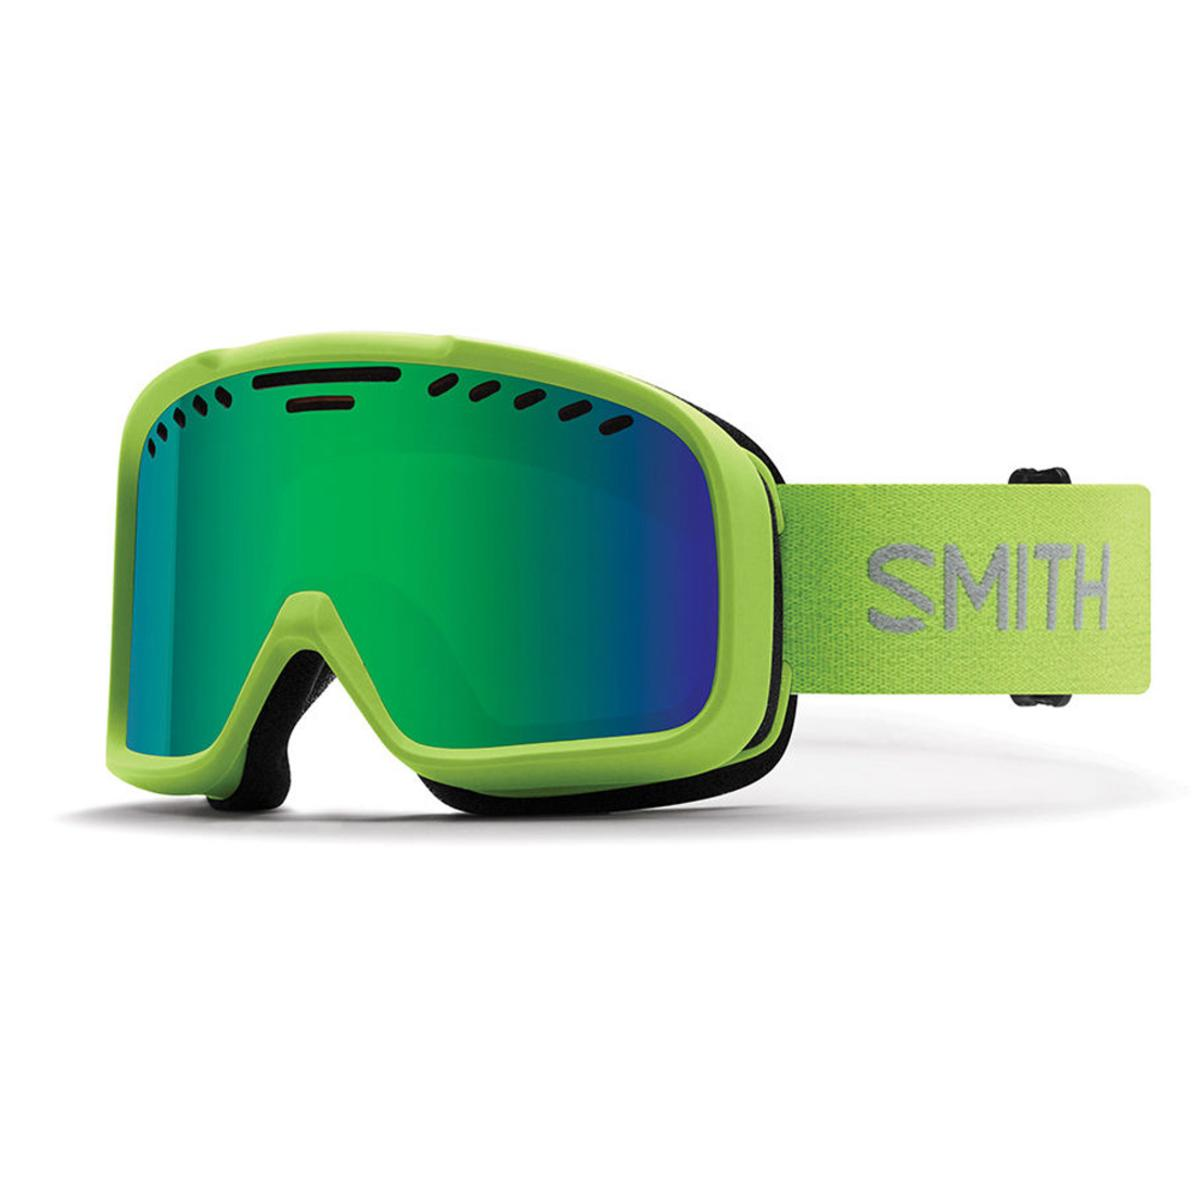 f215532c67 Smith Optics Project Snow Goggles - Flash Frame - The Warming Store